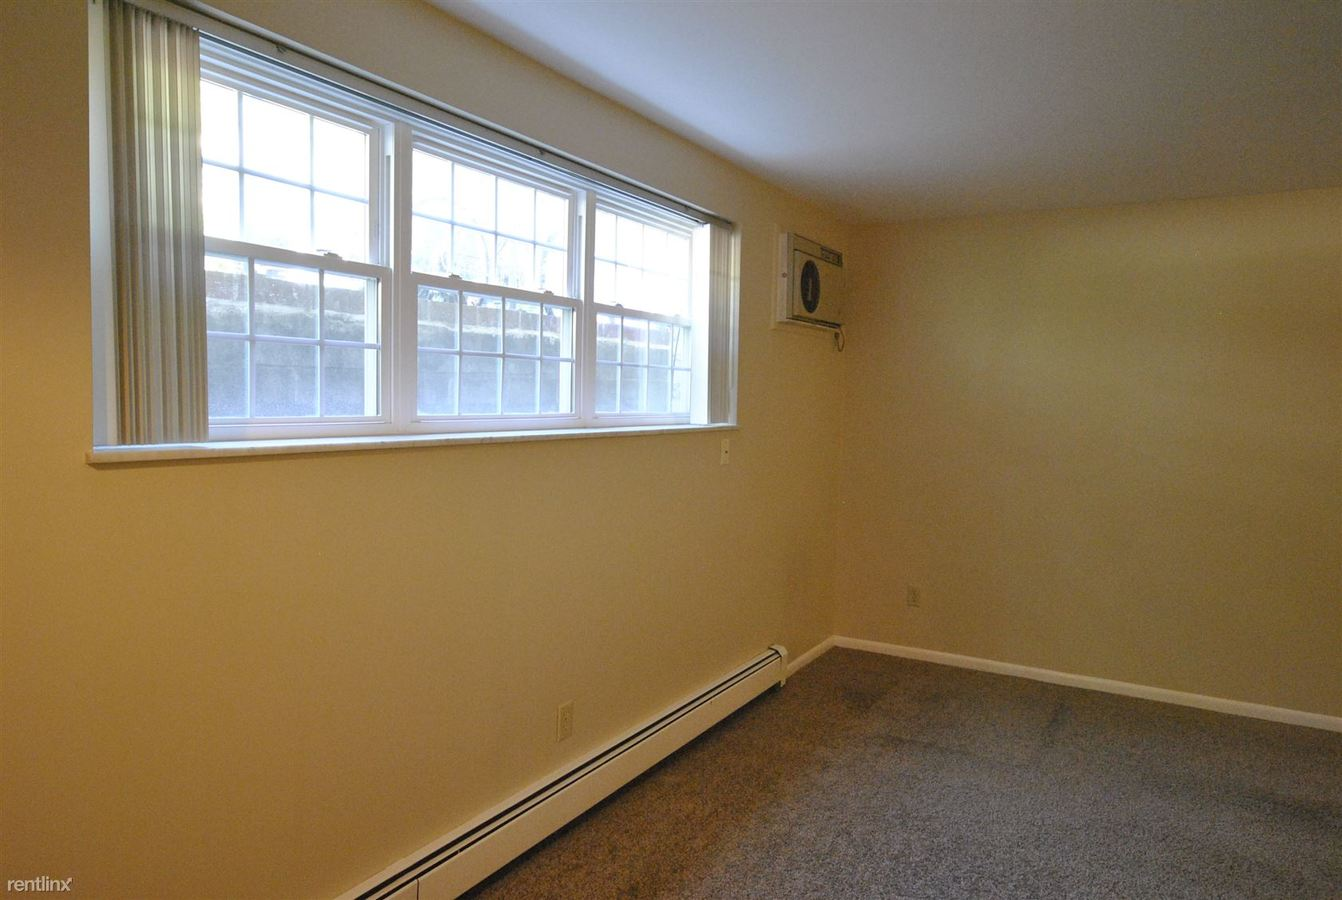 1 Bedroom 1 Bathroom Apartment for rent at 512 N Ashley St in Ann Arbor, MI